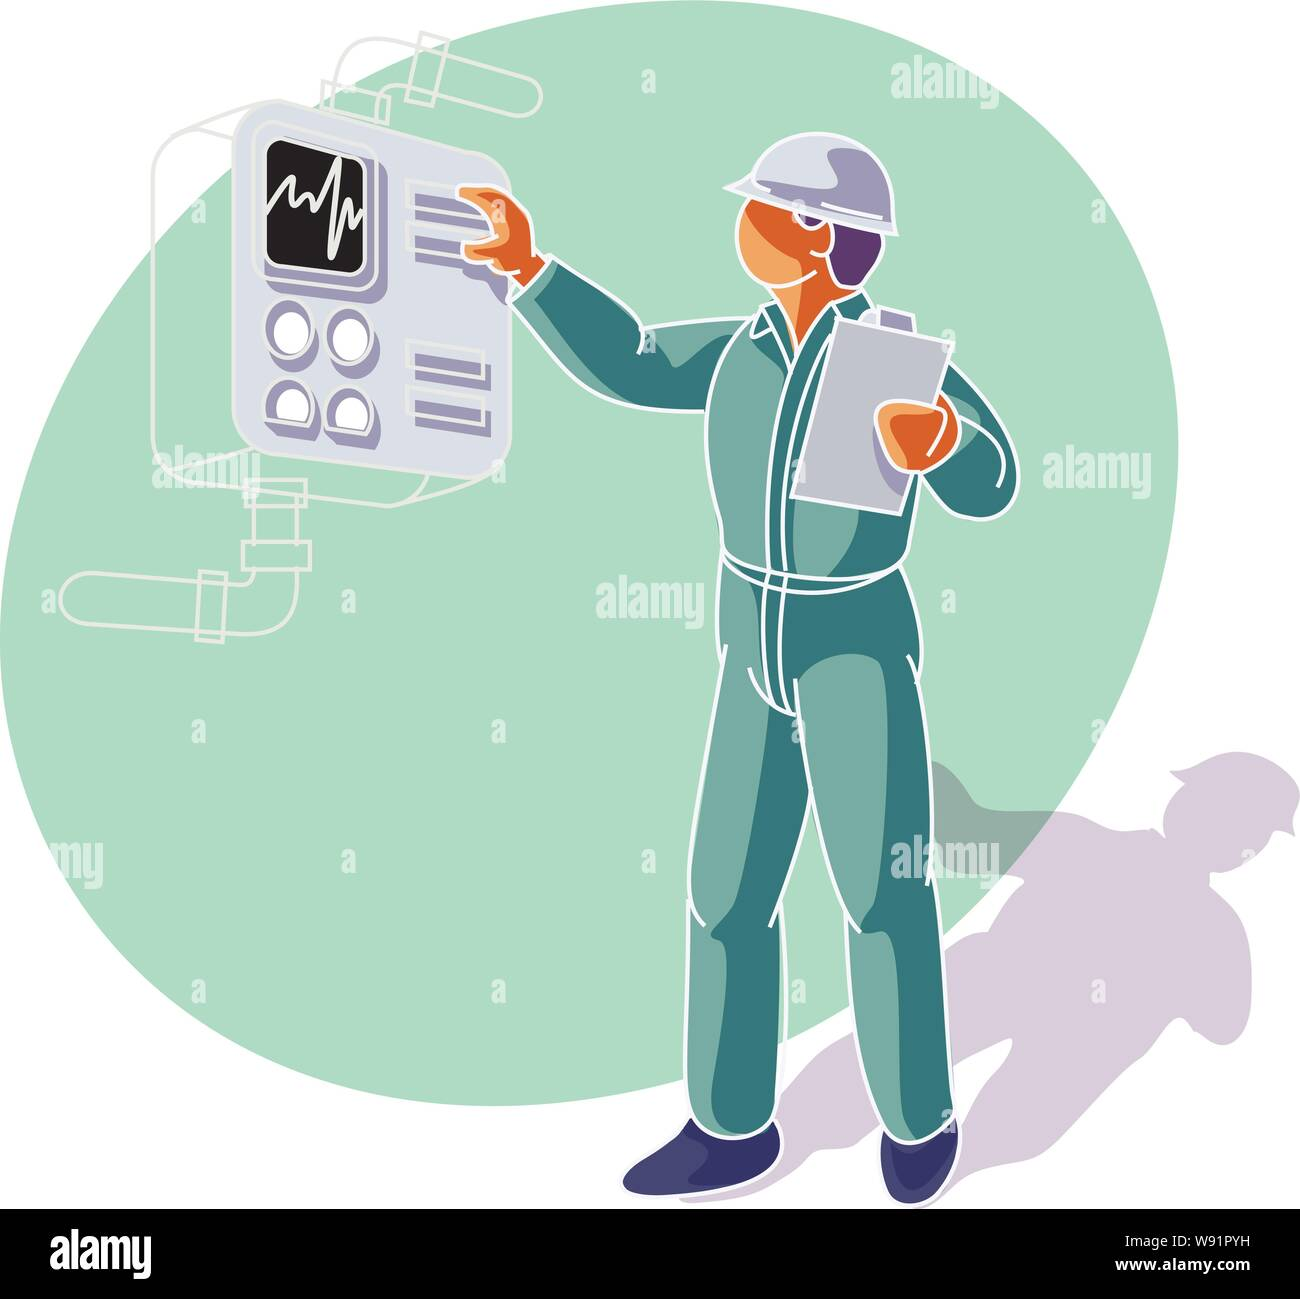 28 Technician Vectors High Resolution Stock Photography and Images ...